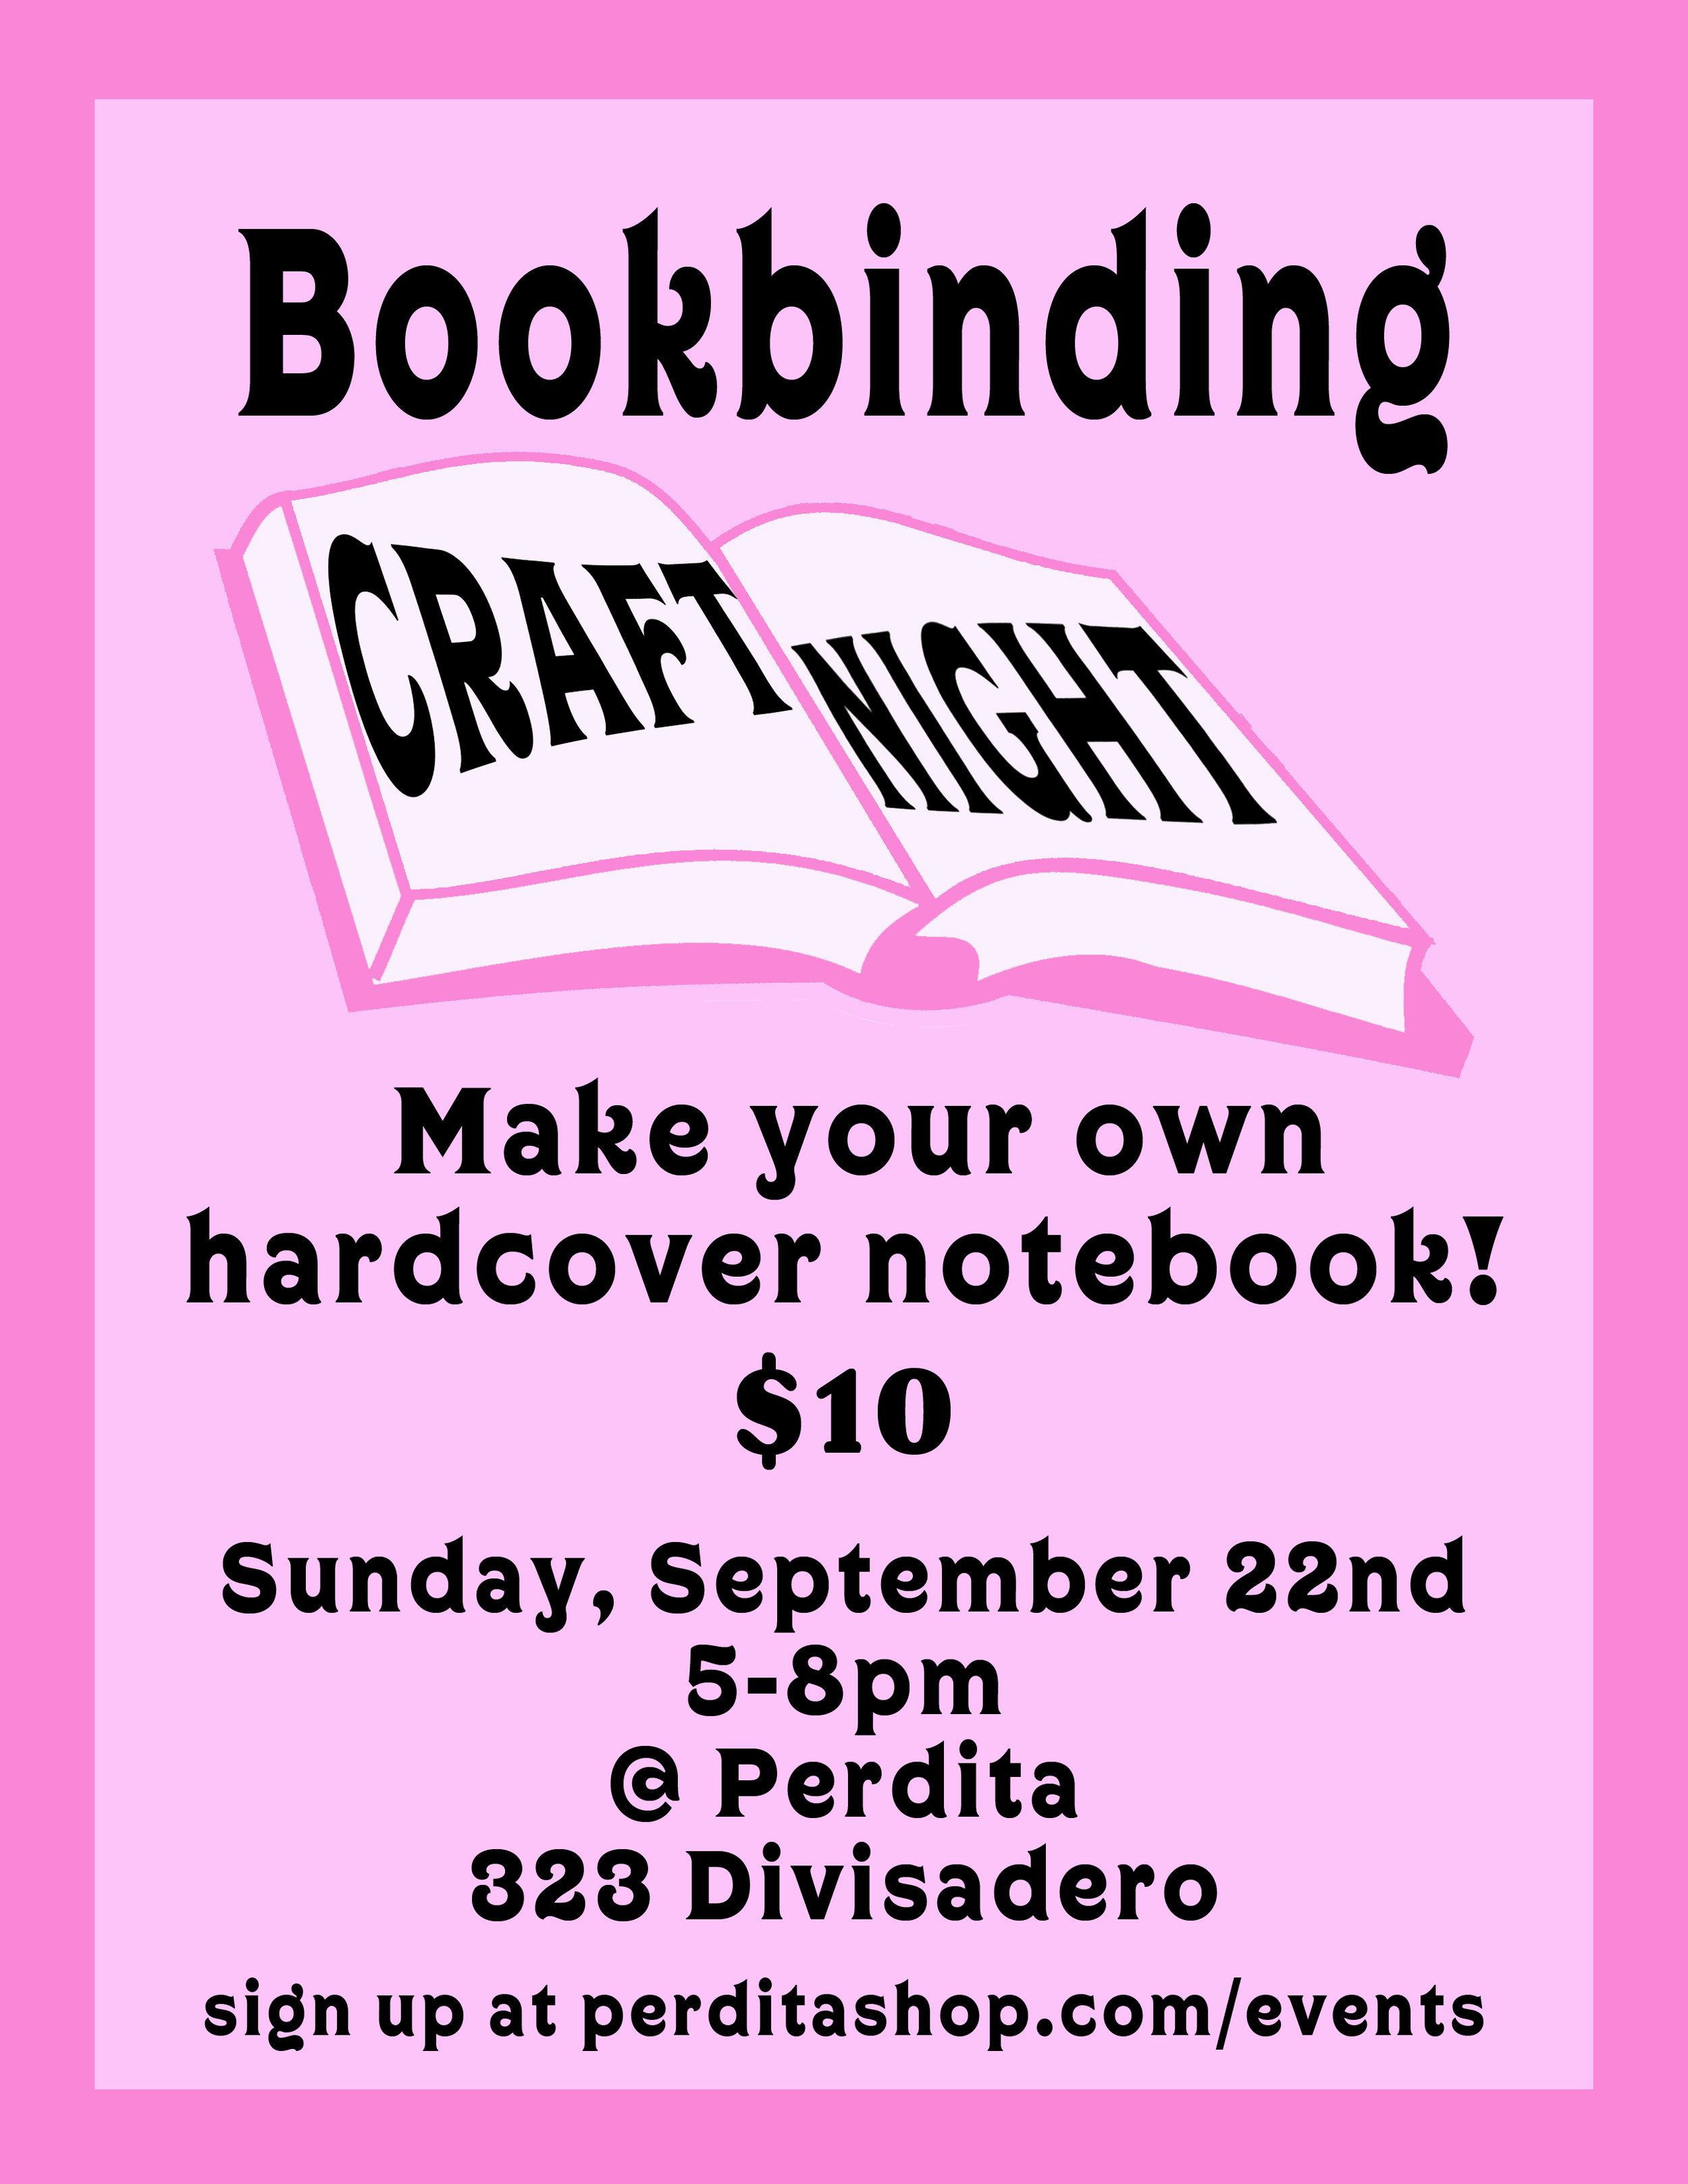 craft night bookbinding flier 3.jpg